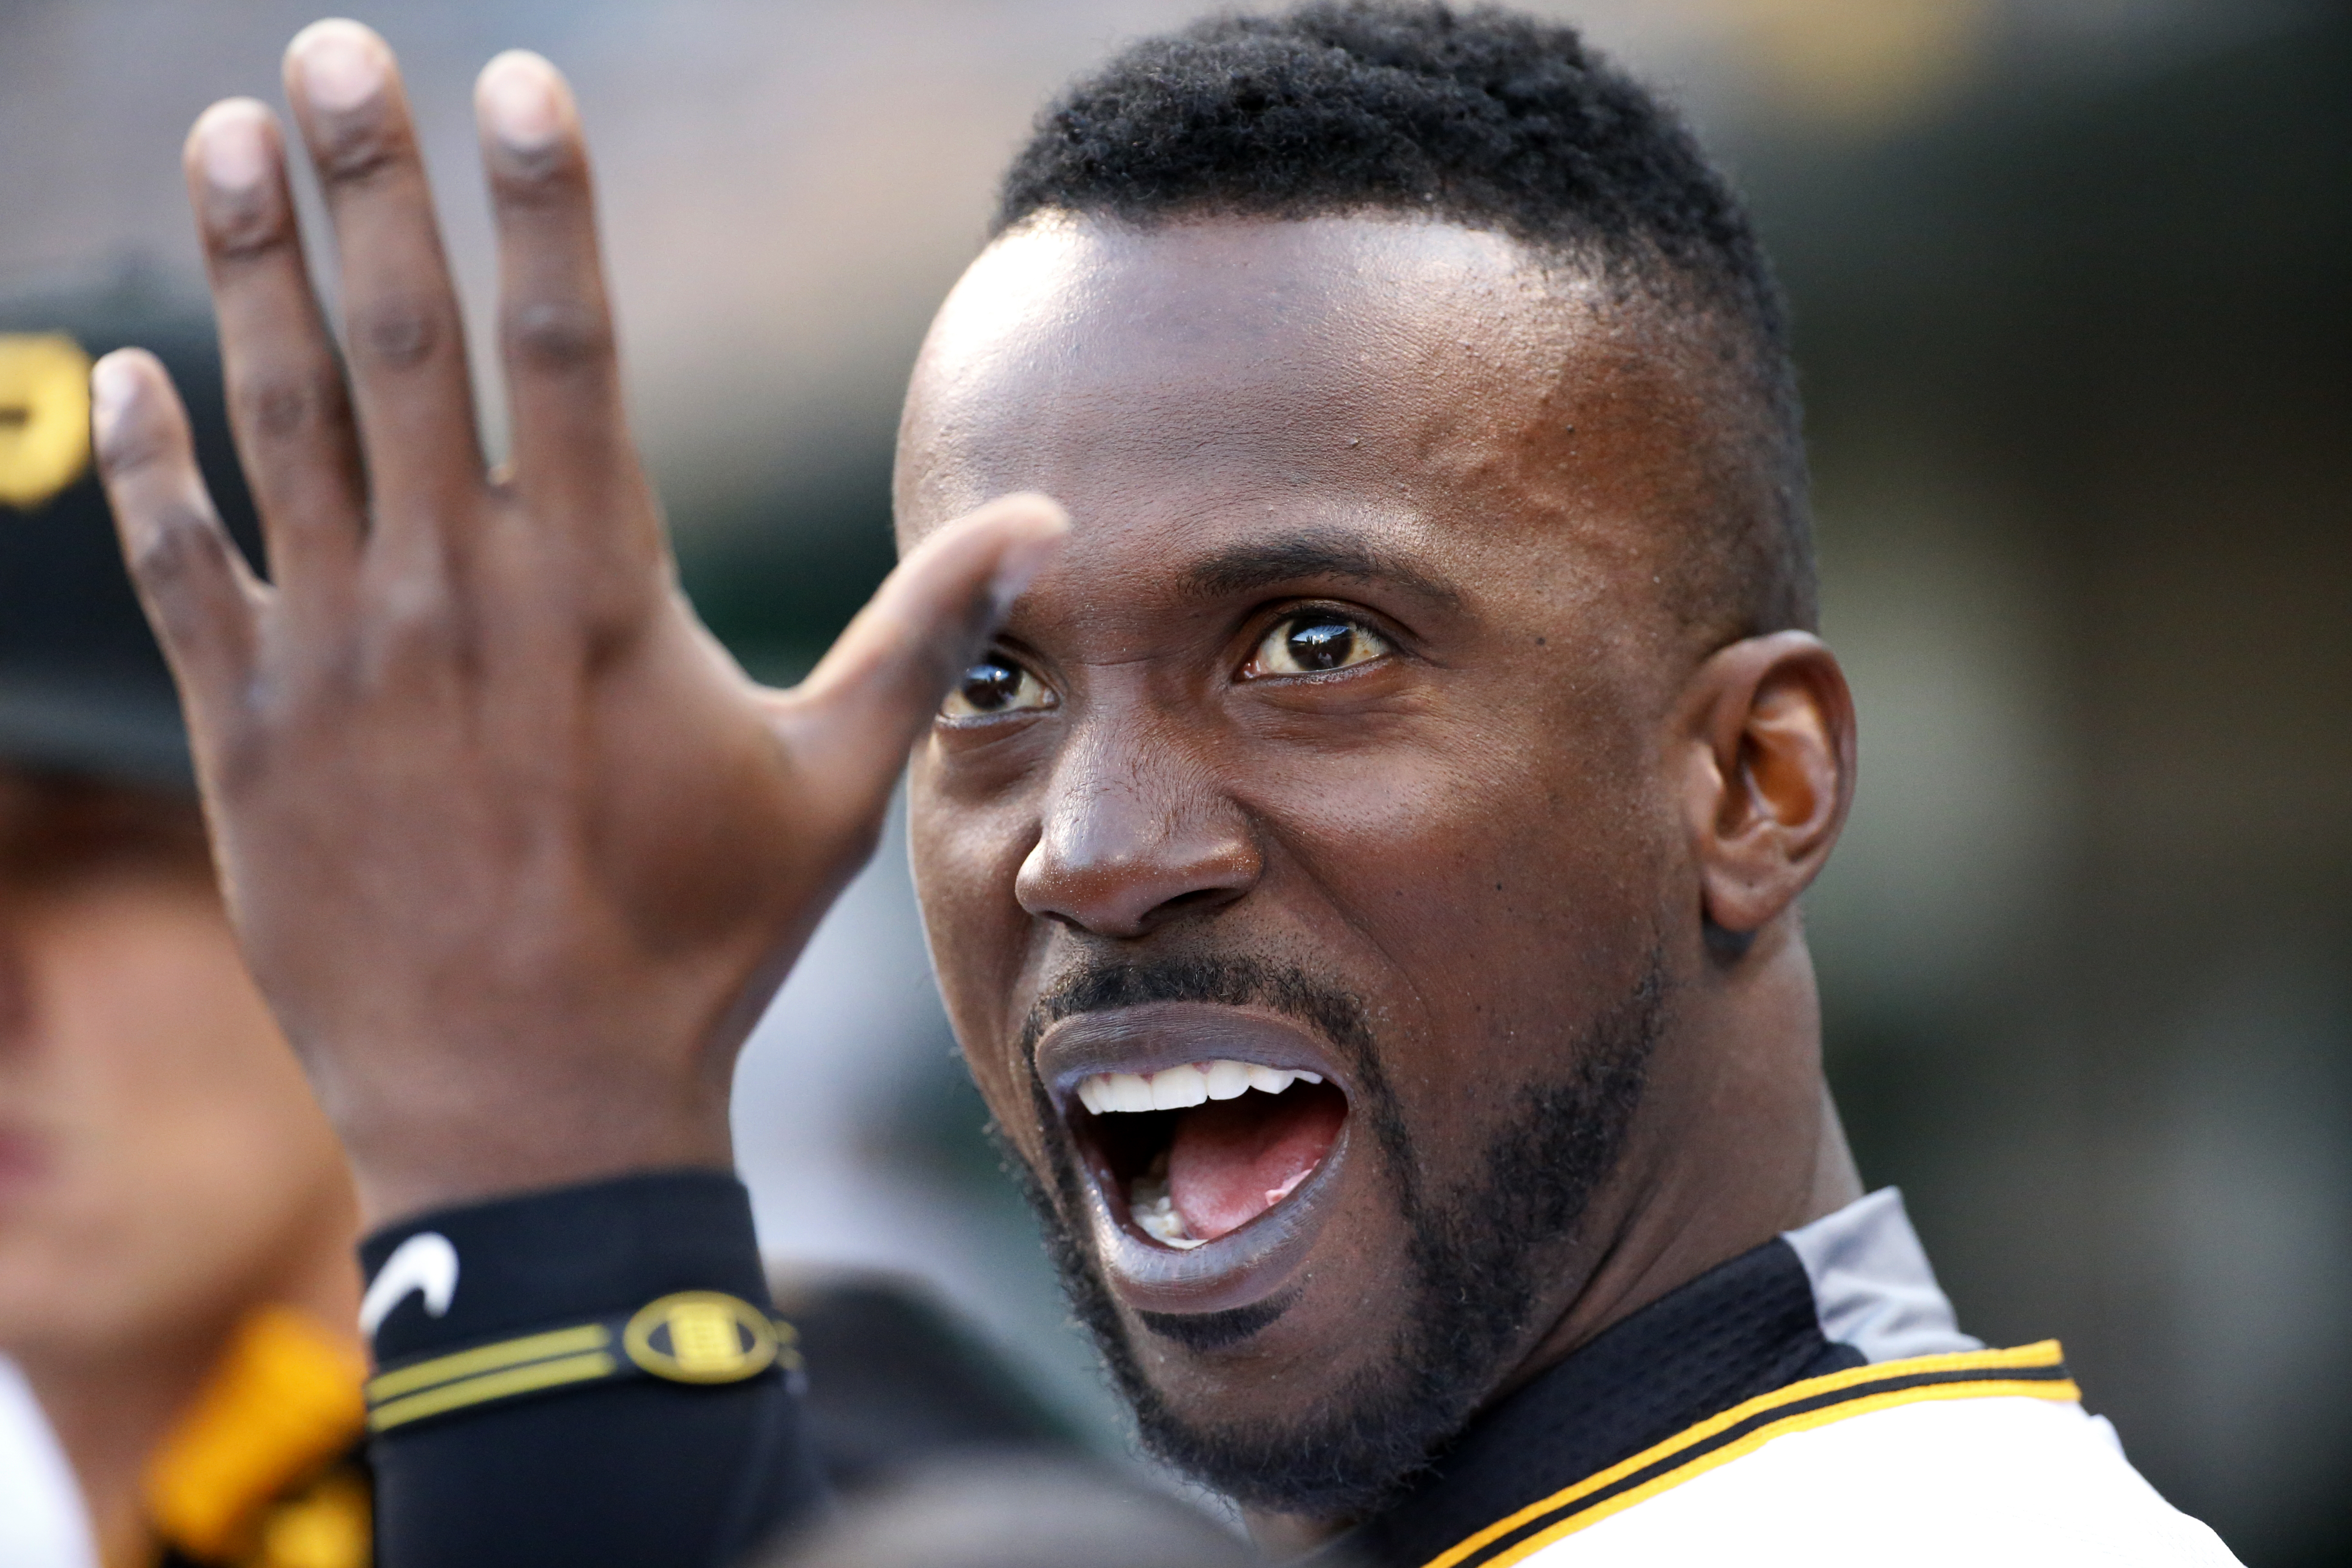 Pittsburgh Pirates' Andrew McCutchen reacts while watching teammate Gregory Polanco steal second on the scoreboard replay during the second inning of a baseball game against the New York Mets in Pittsburgh, Friday, May 22, 2015. (AP Photo/Gene J. Puskar)